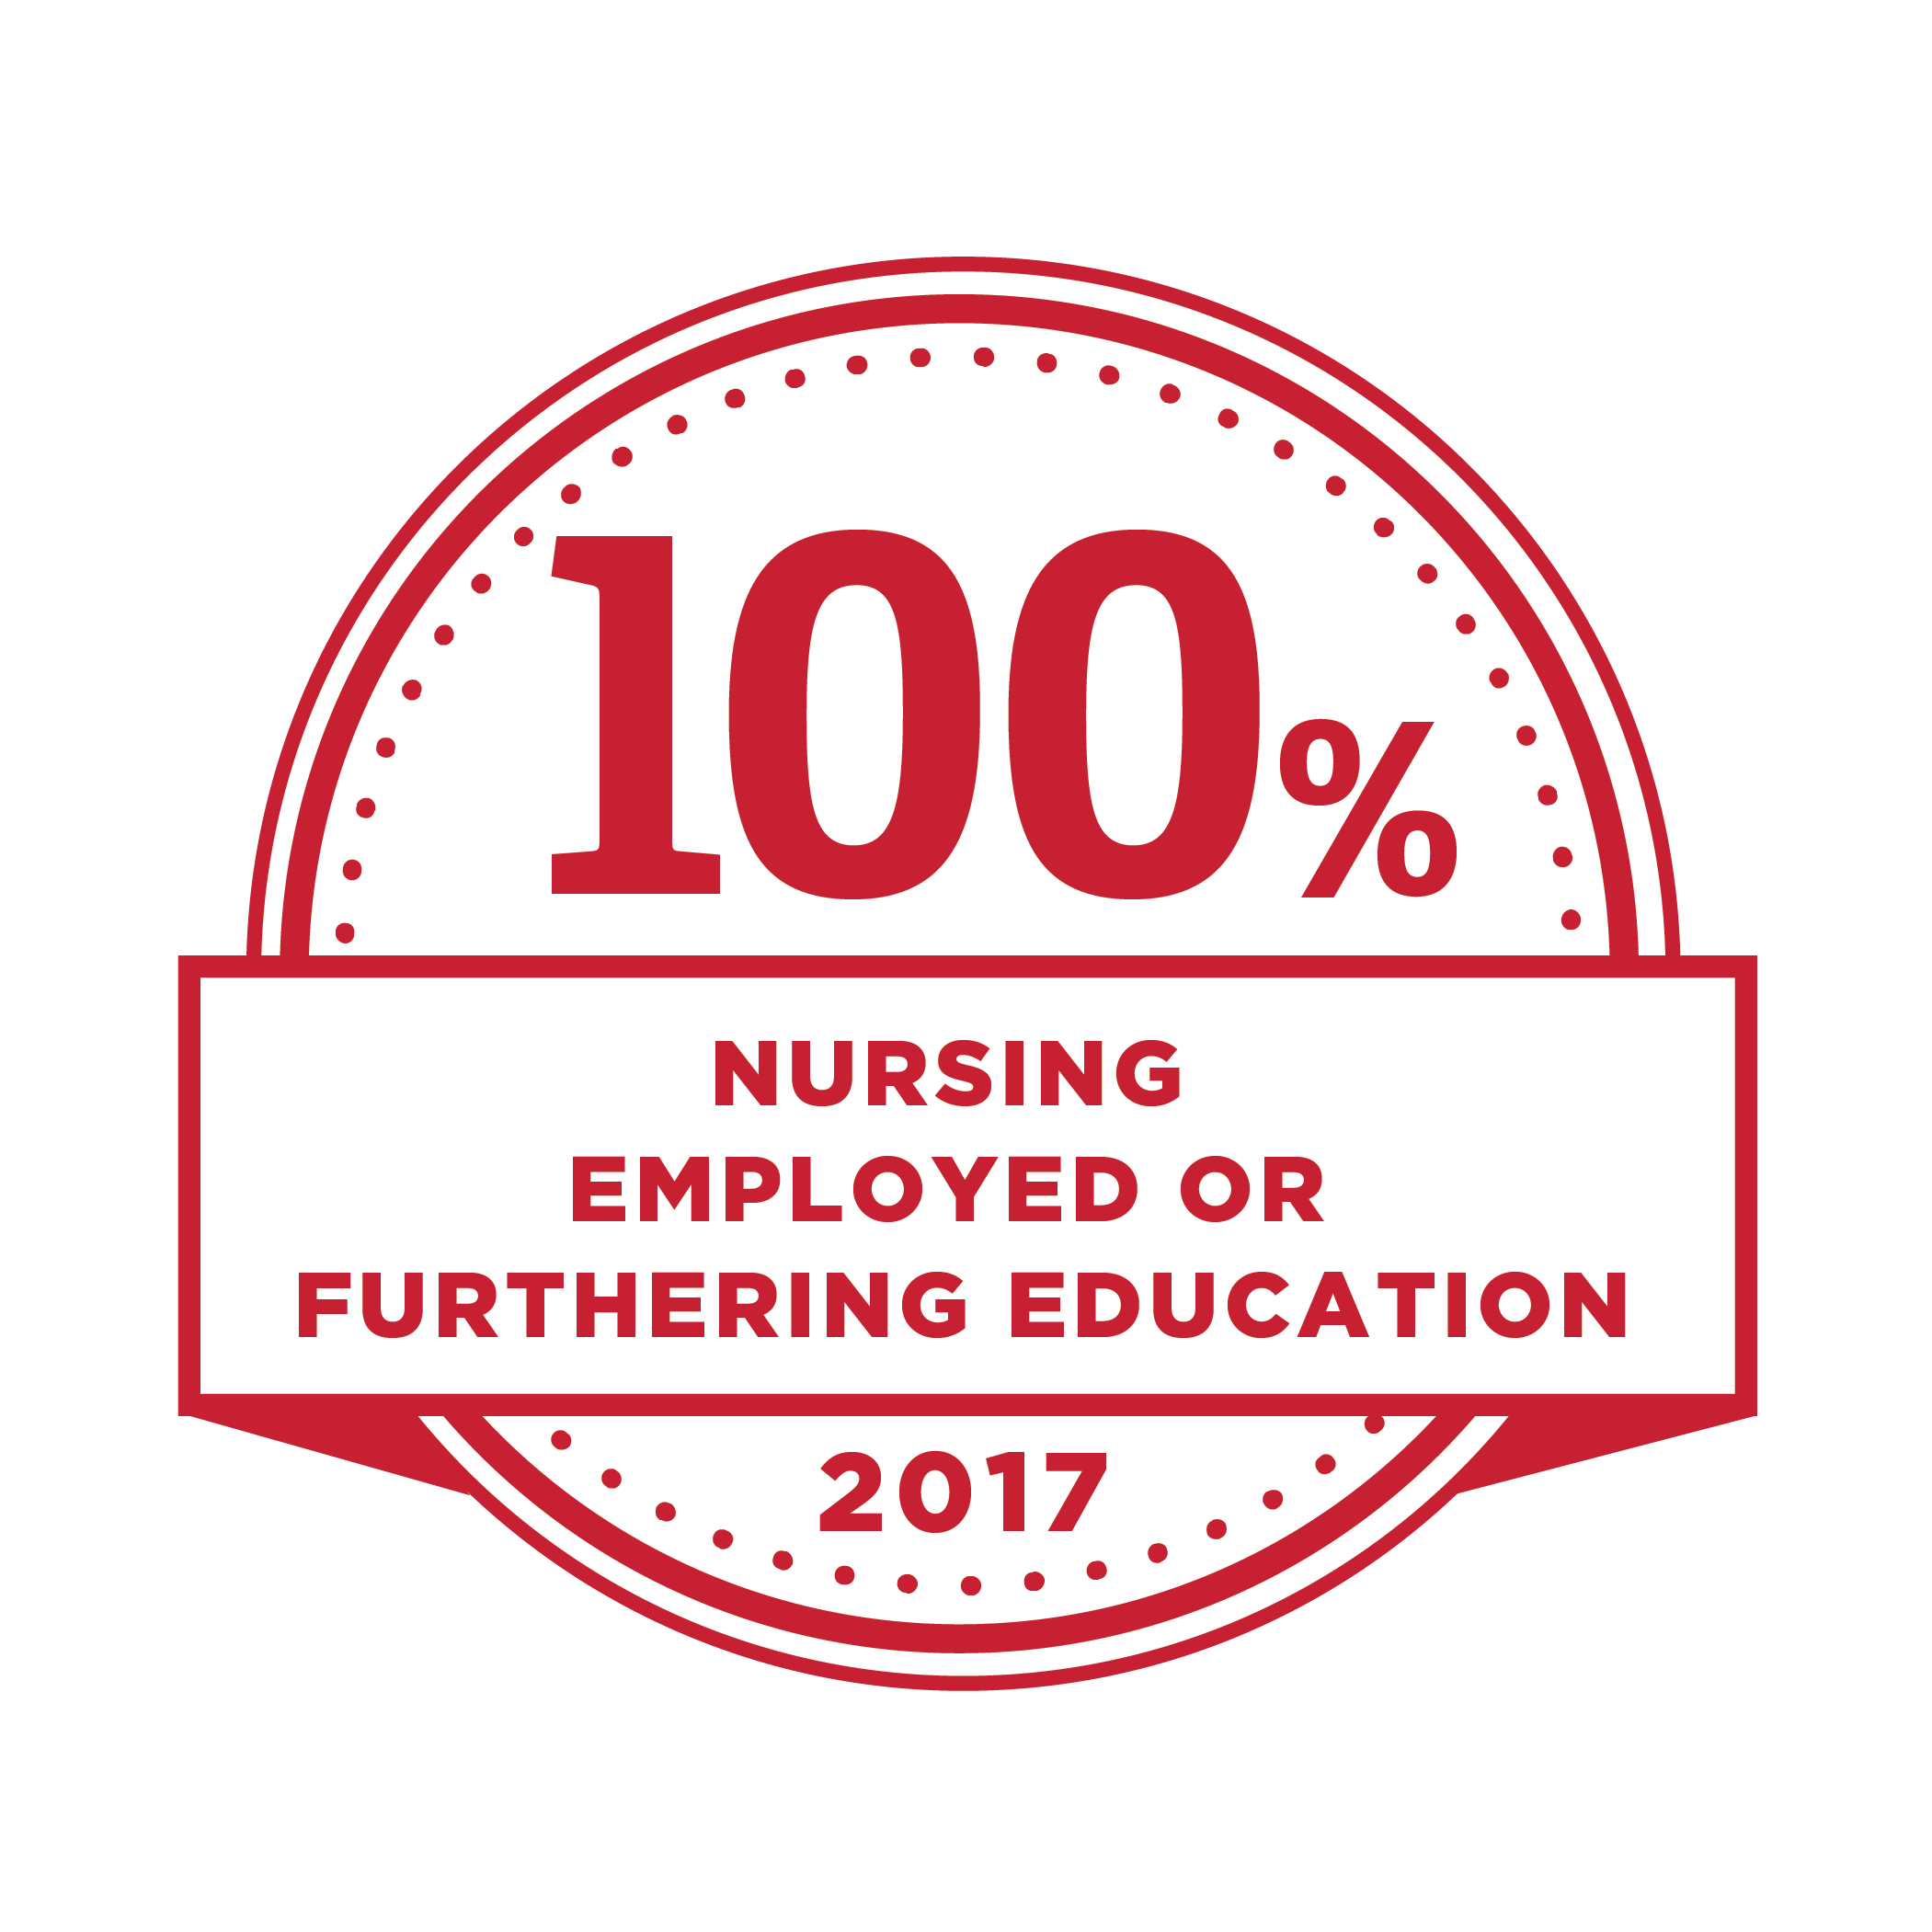 100% nursing employed or furthering education. 2017